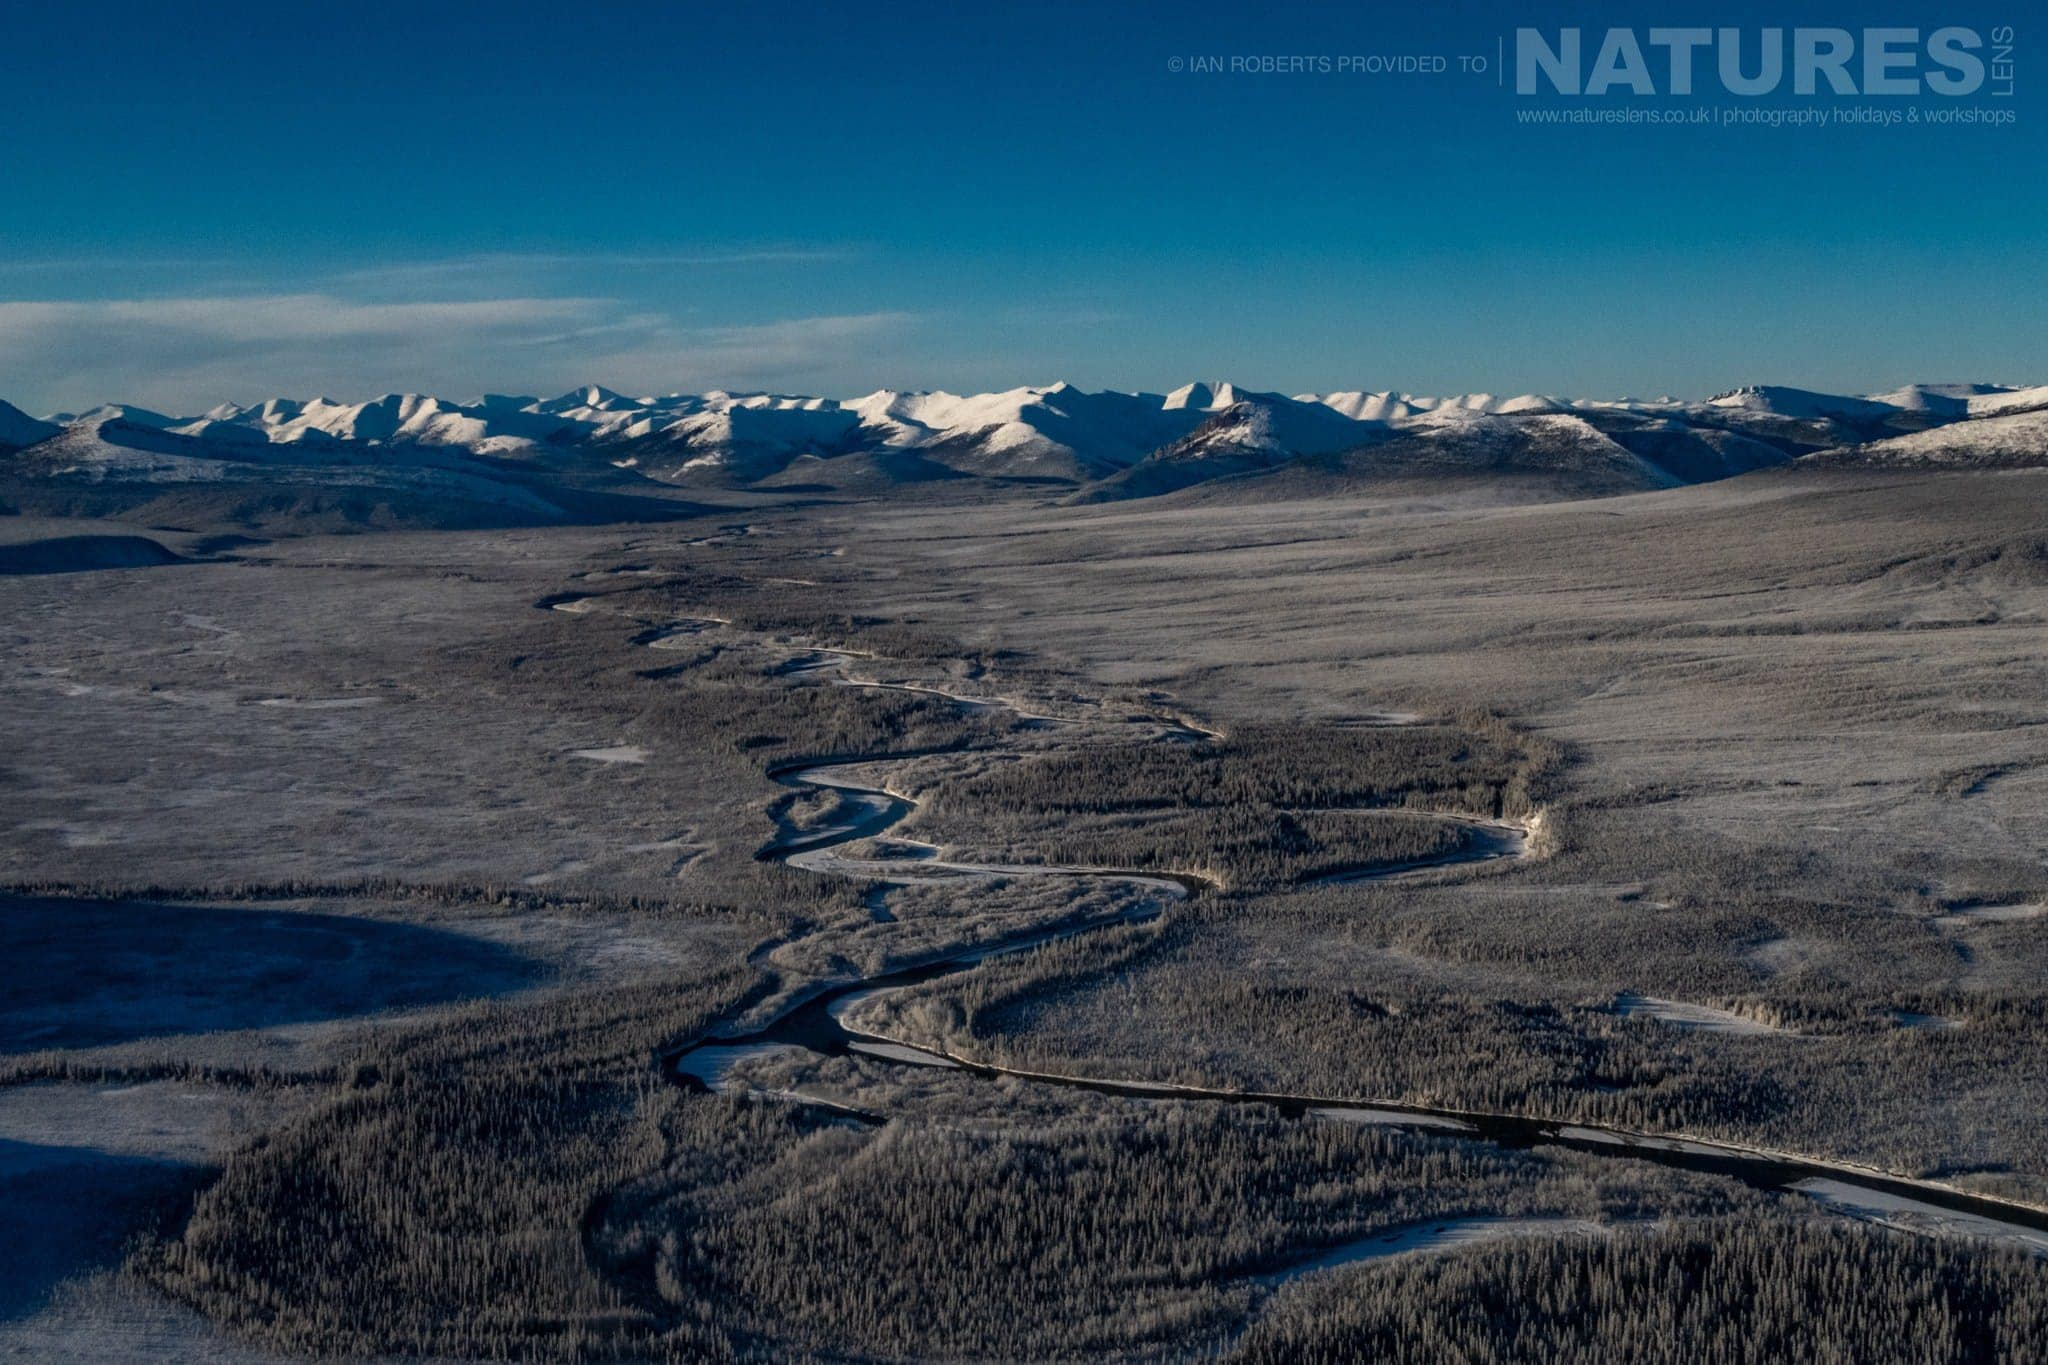 An Aerial View Of The Yukon Landscape   Captured During The Natureslens Ice Grizzlies Of The Yukon Photography Holiday